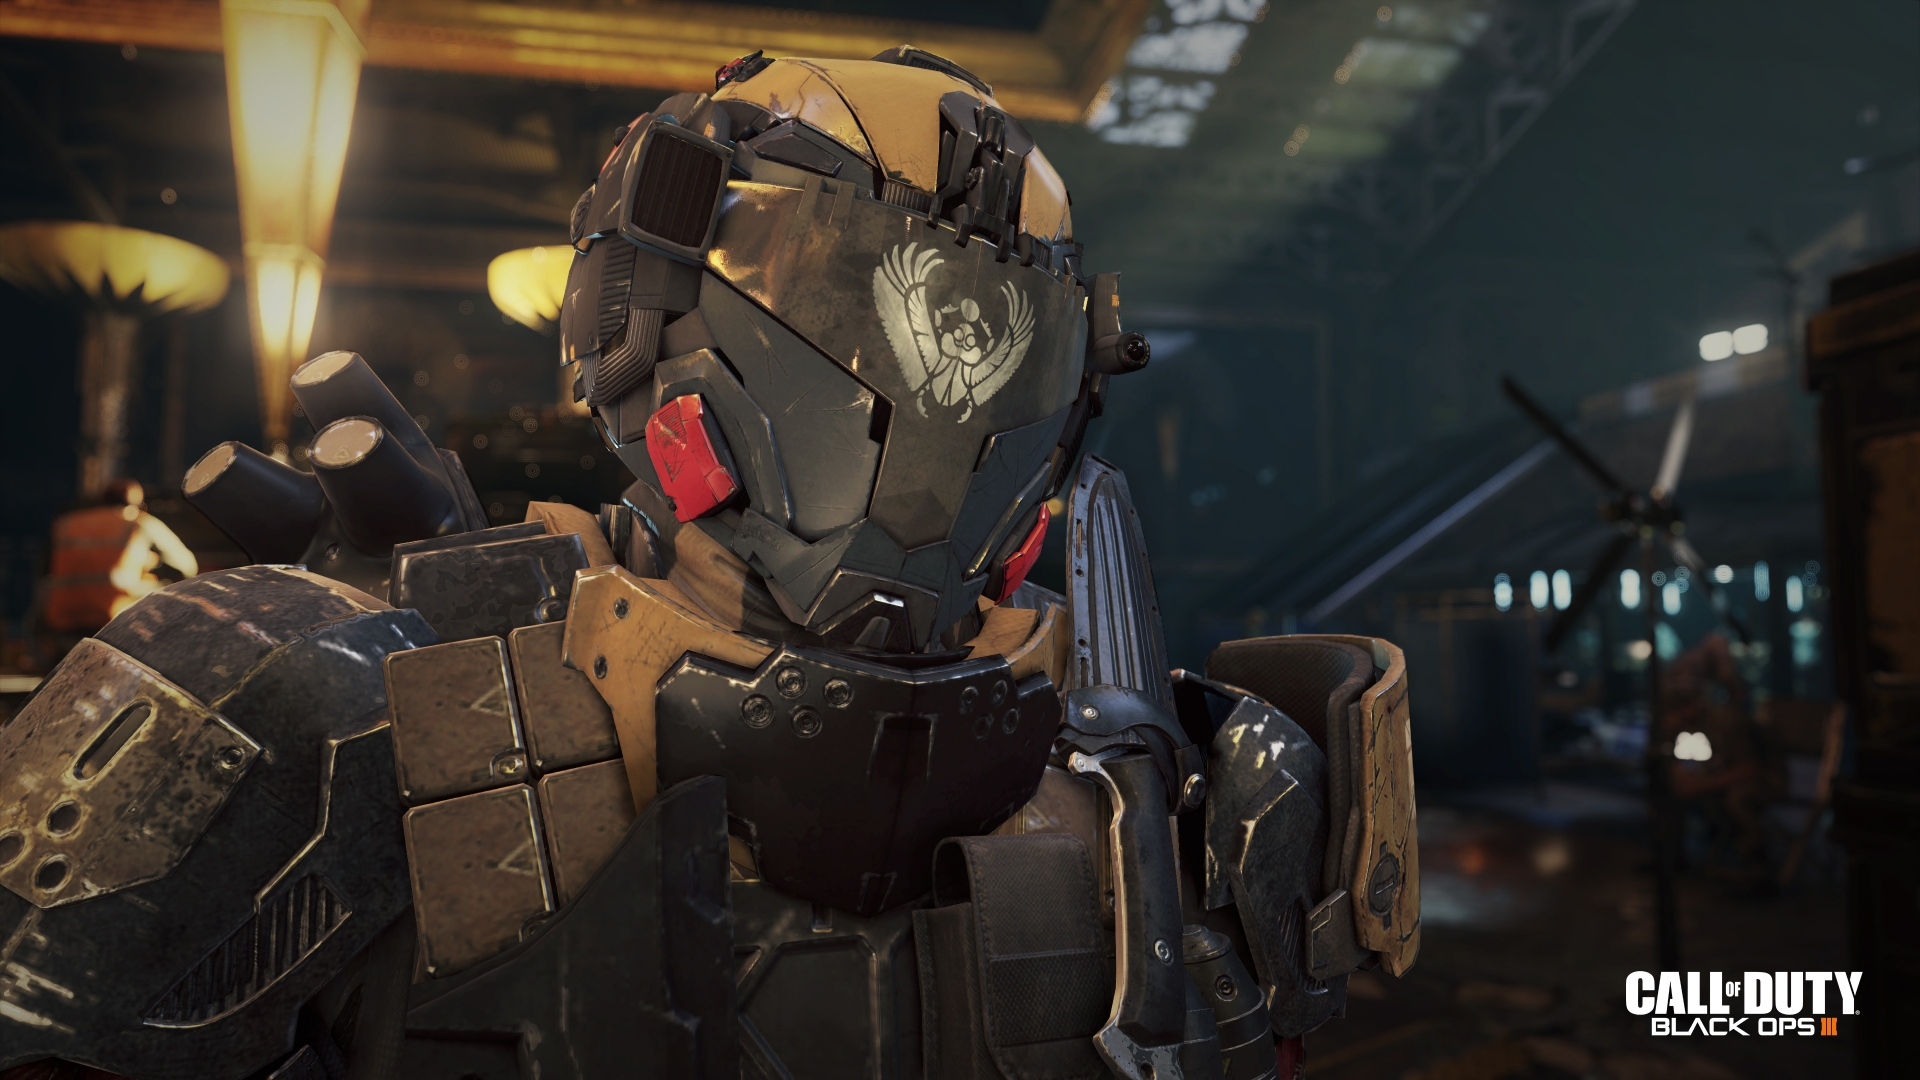 Black Ops 3_Ramses Station_Armored Guard_t